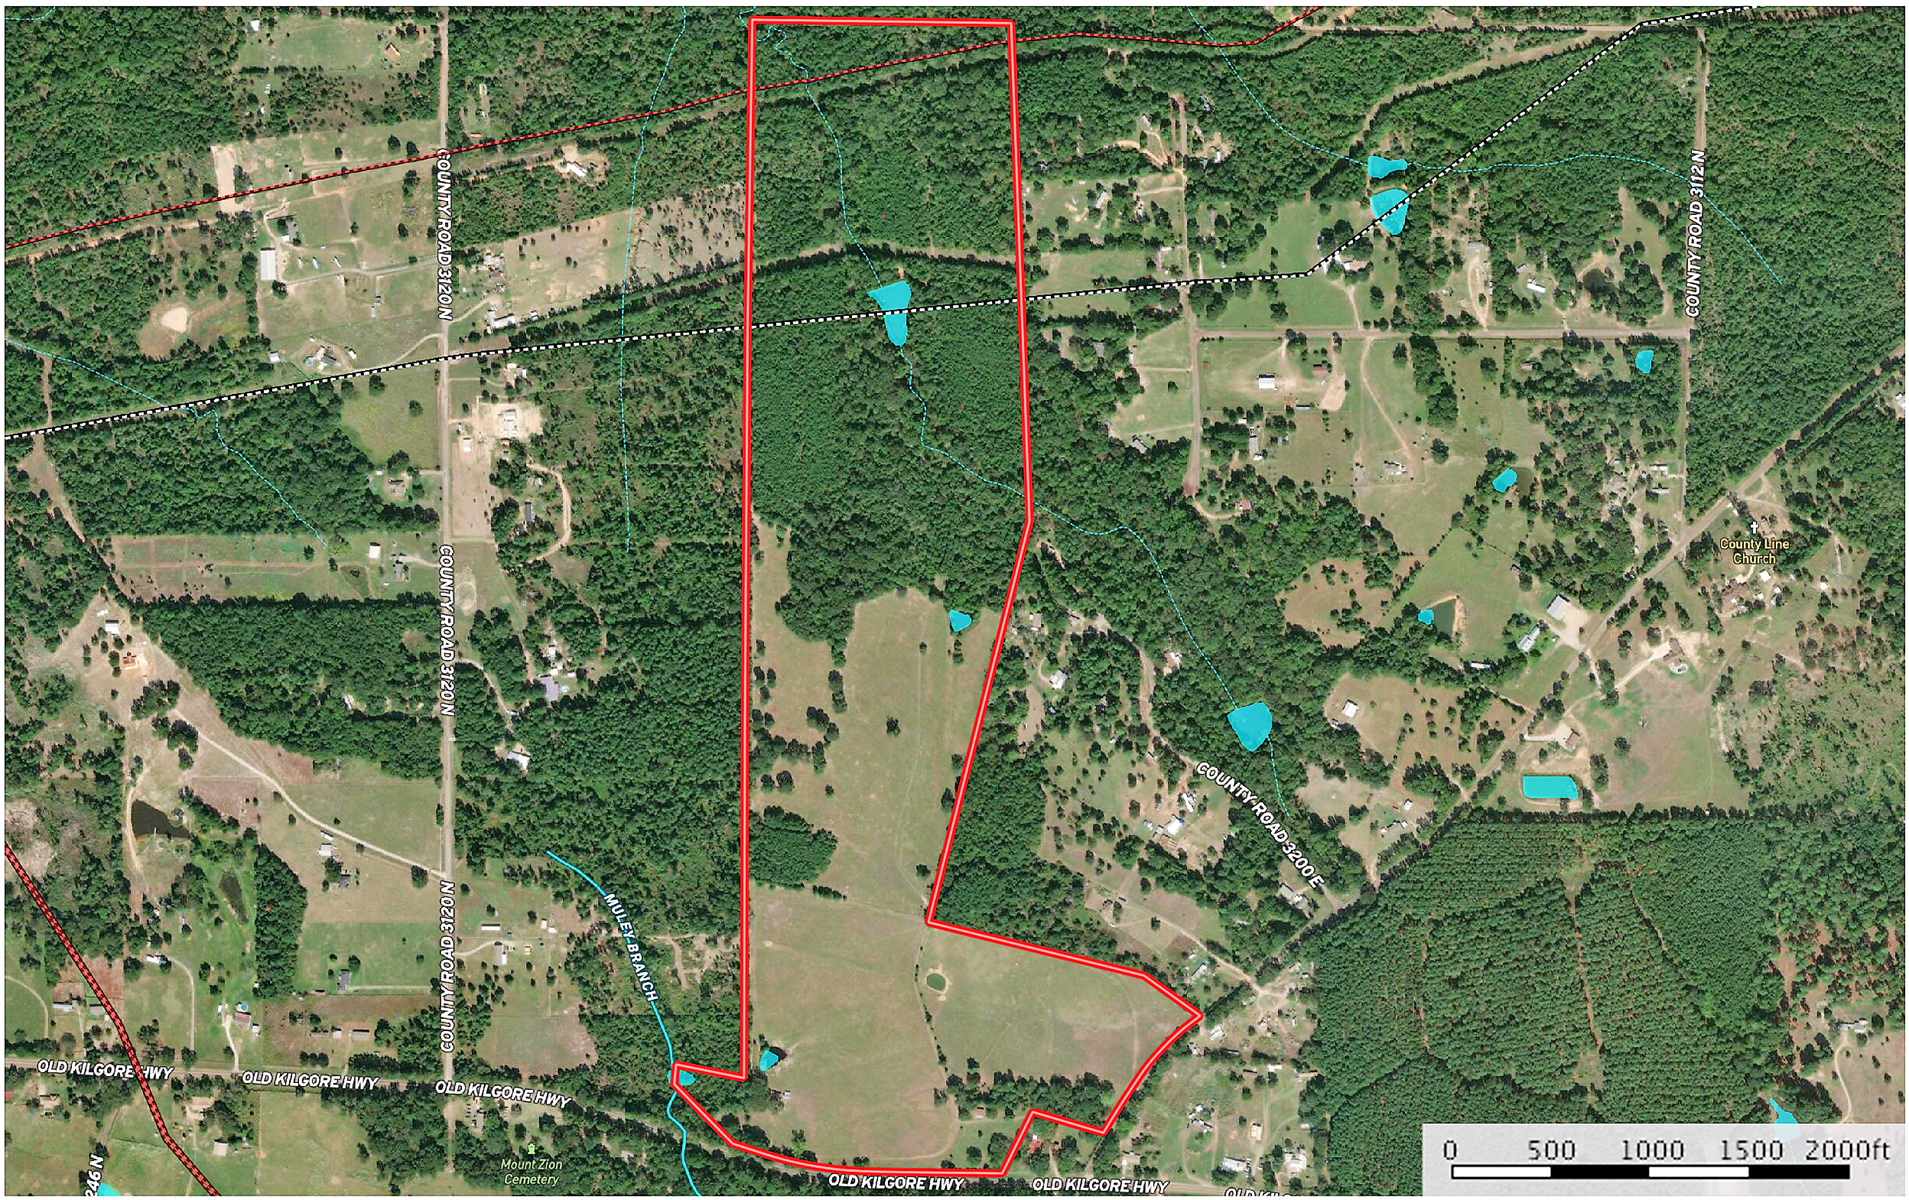 East Texas Land For Sale Timber Pasture Hunting Fishing